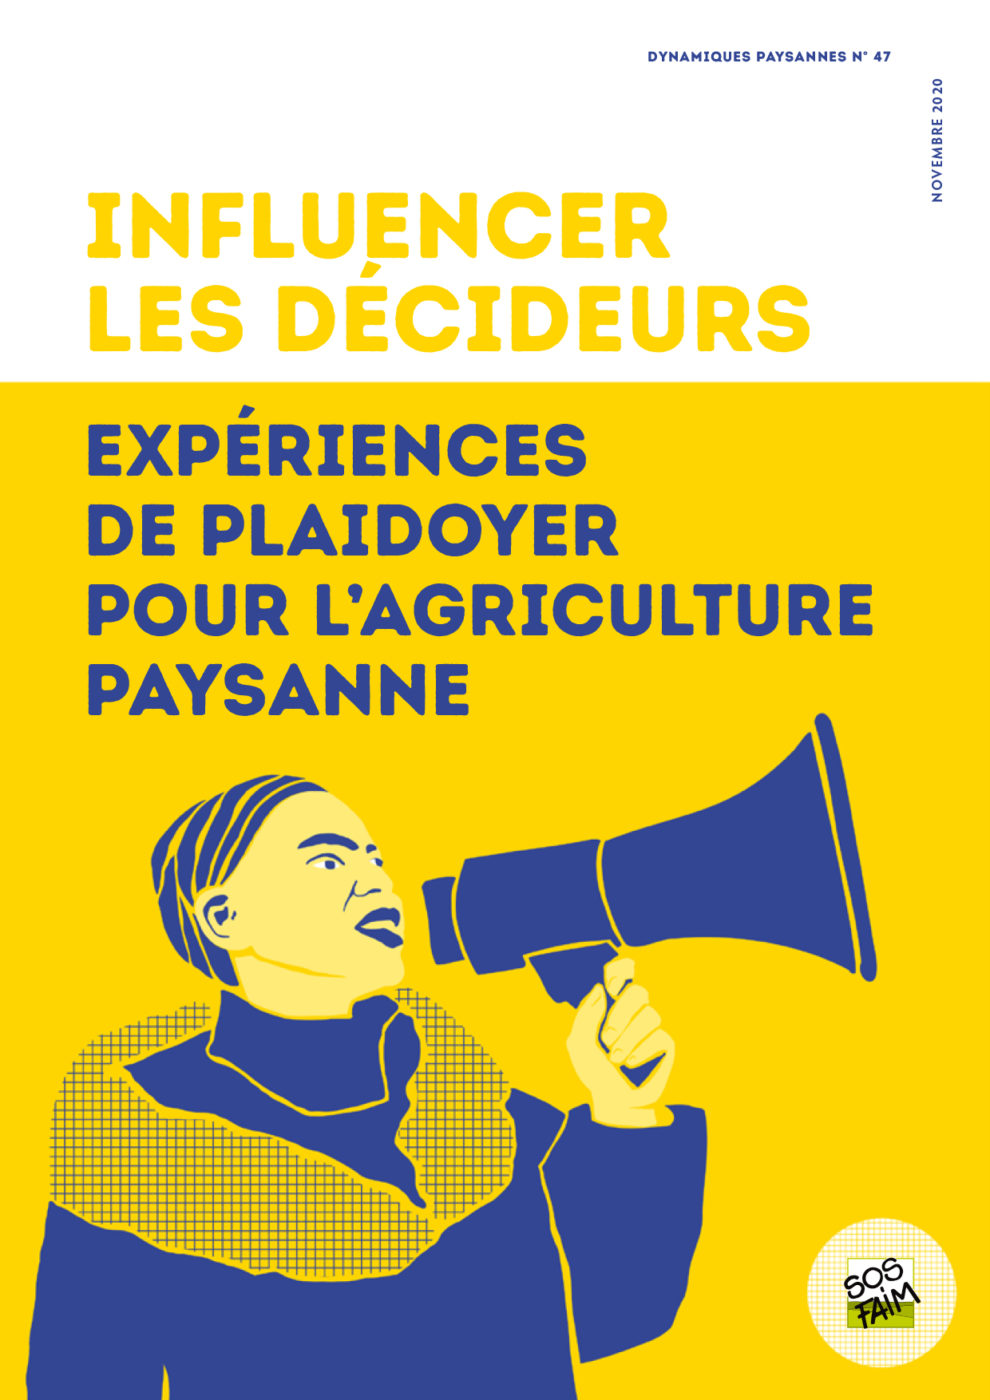 INFLUENCER LES DECIDEURS